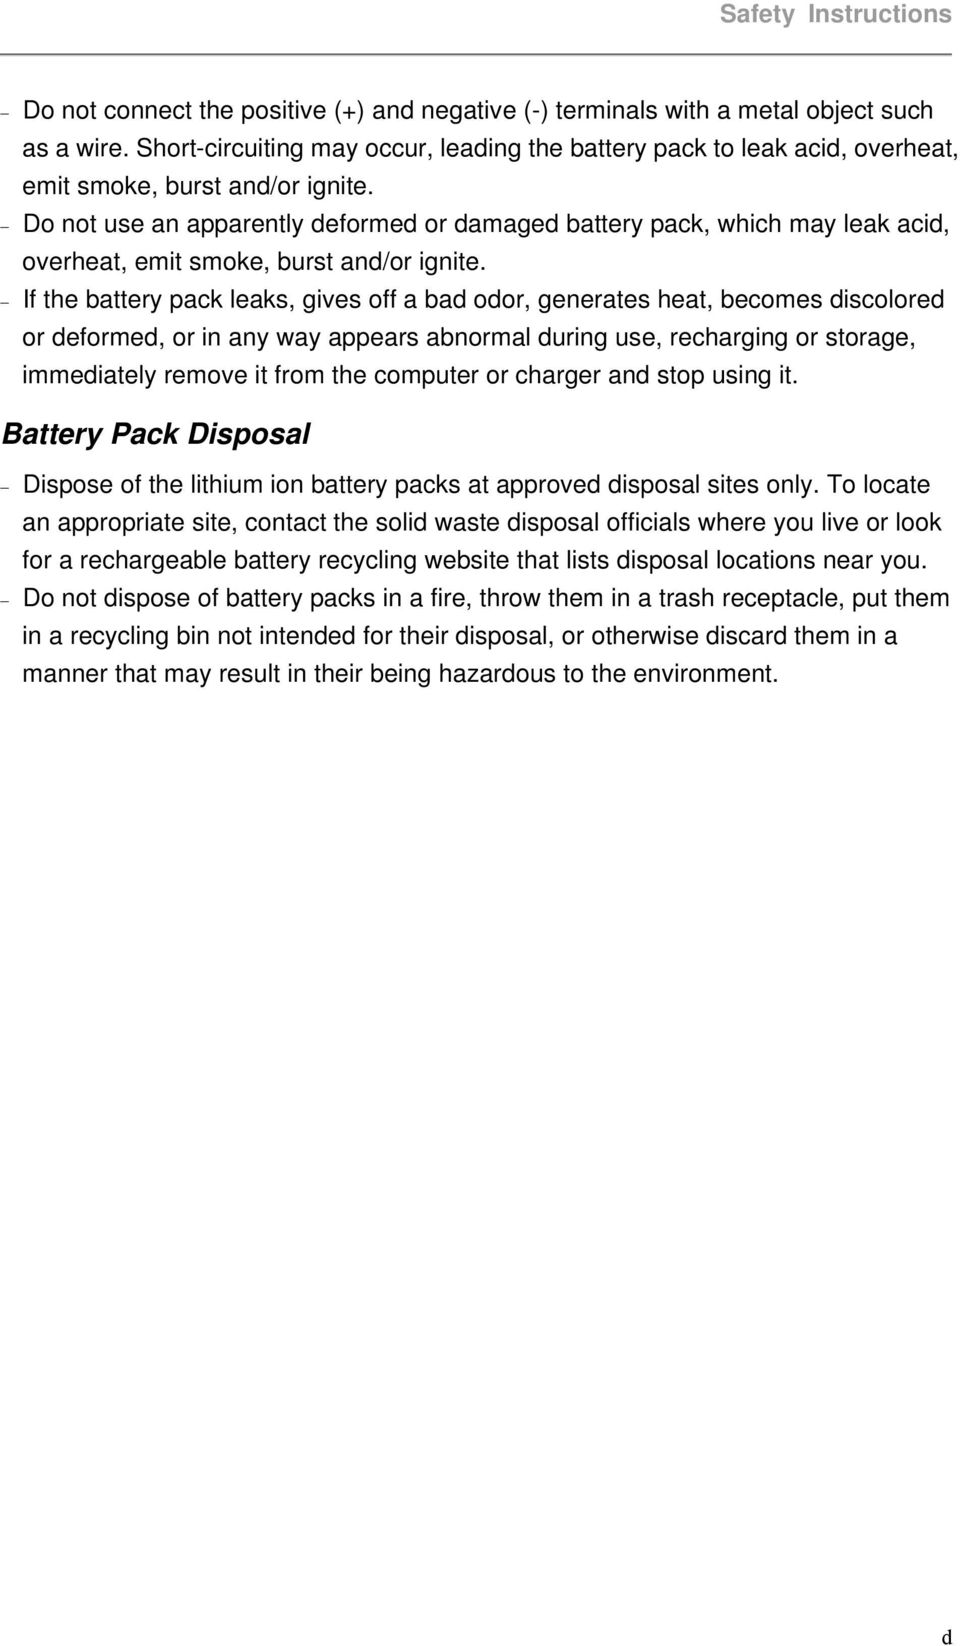 Do not use an apparently deformed or damaged battery pack, which may leak acid, overheat, emit smoke, burst and/or ignite.